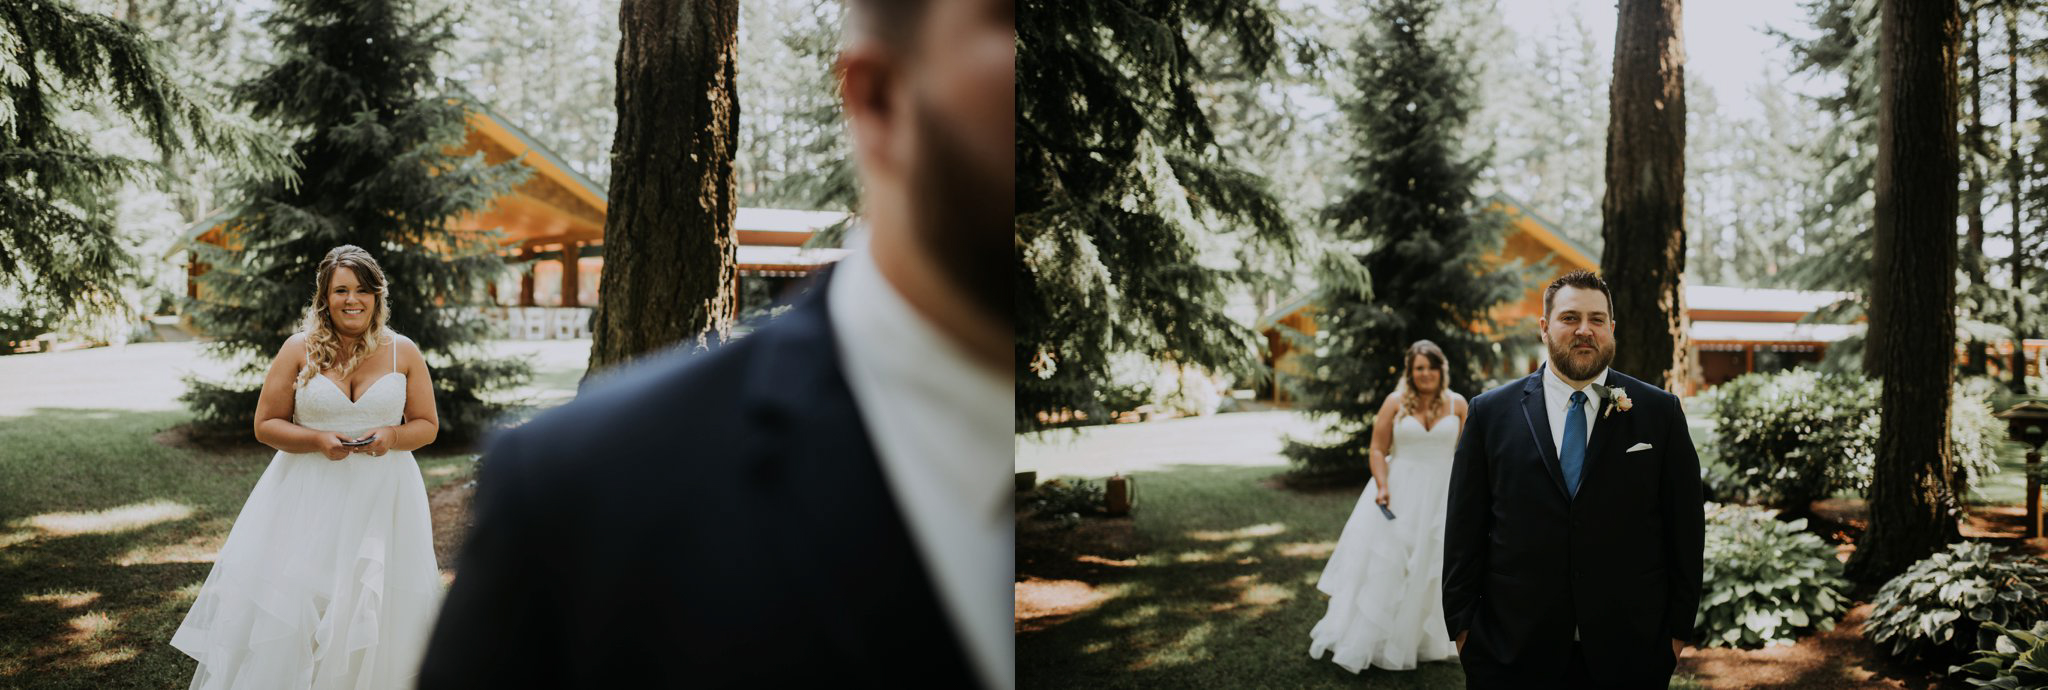 evergreen-gardens-bellingham-wedding-seattle-photographer-caitlyn-nikula-31.jpg